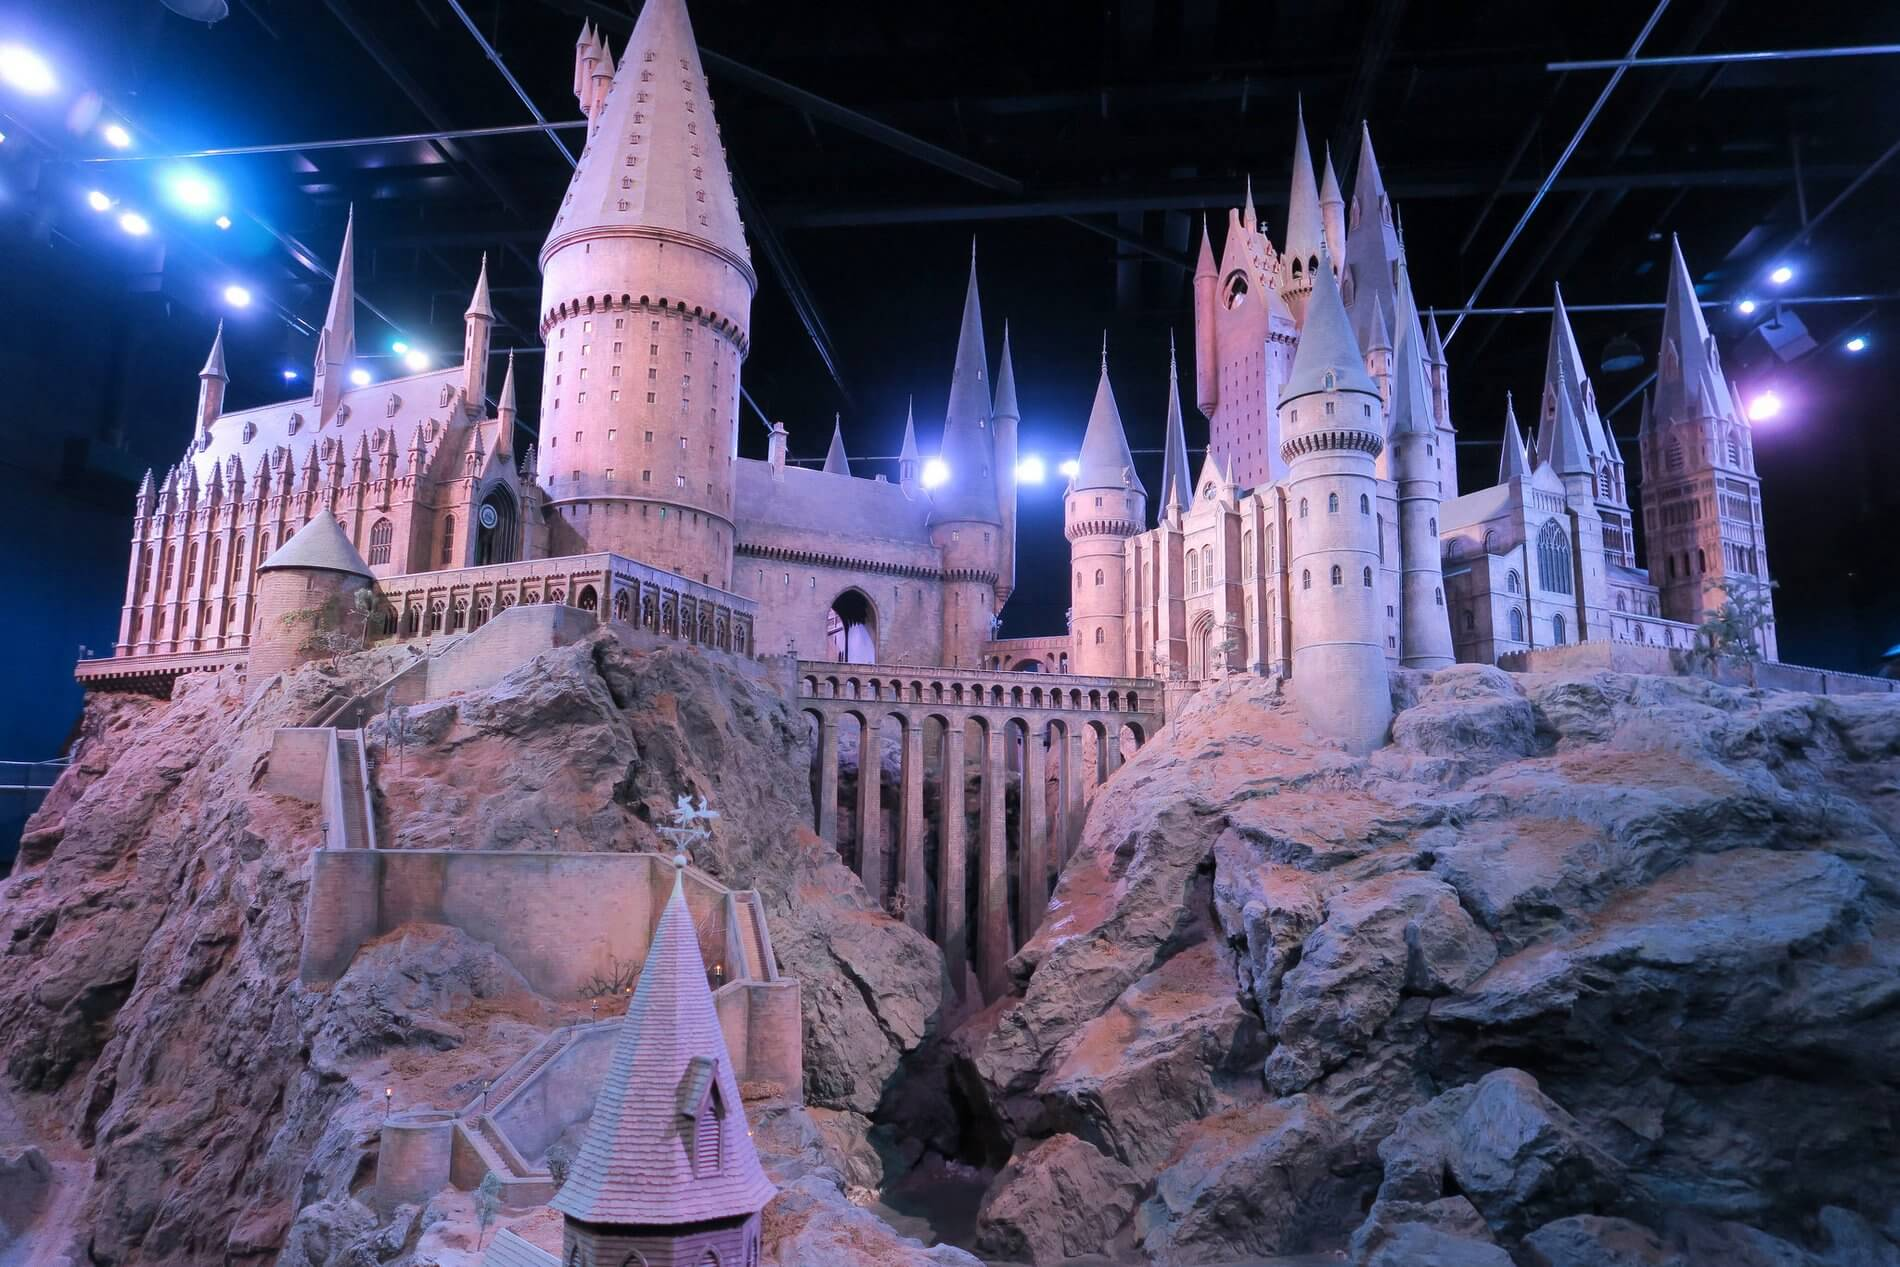 Our Magical Day at the Harry Potter Studio Tour in London